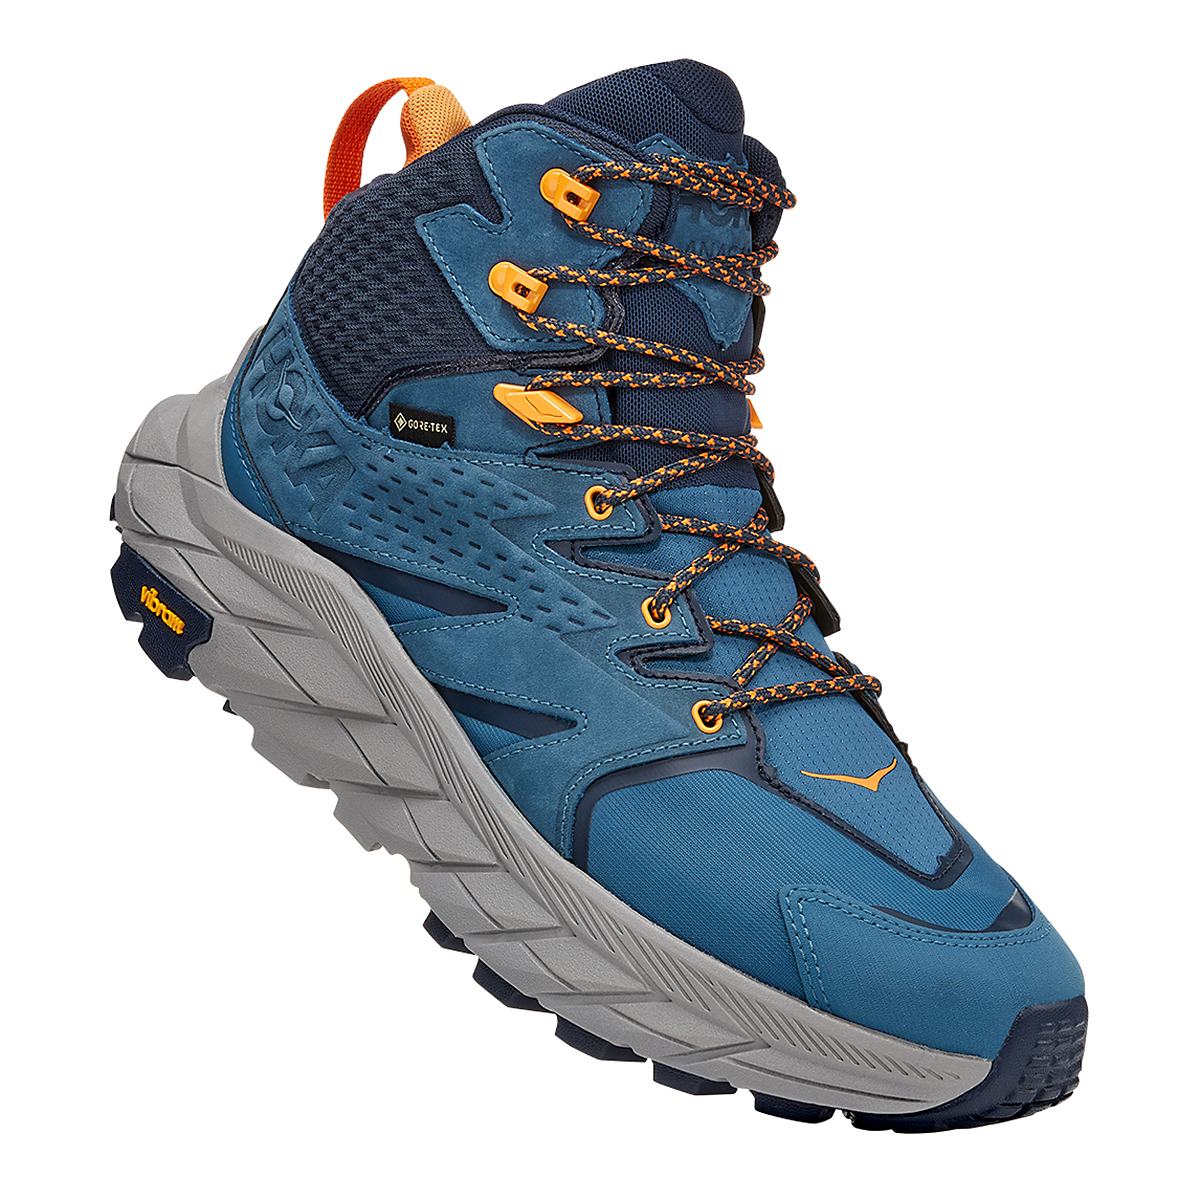 Men's Hoka One One Anacapa Mid Gore-Tex Trail Running Shoe - Color: Real Teal/Outer Space - Size: 7 - Width: Regular, Real Teal/Outer Space, large, image 2